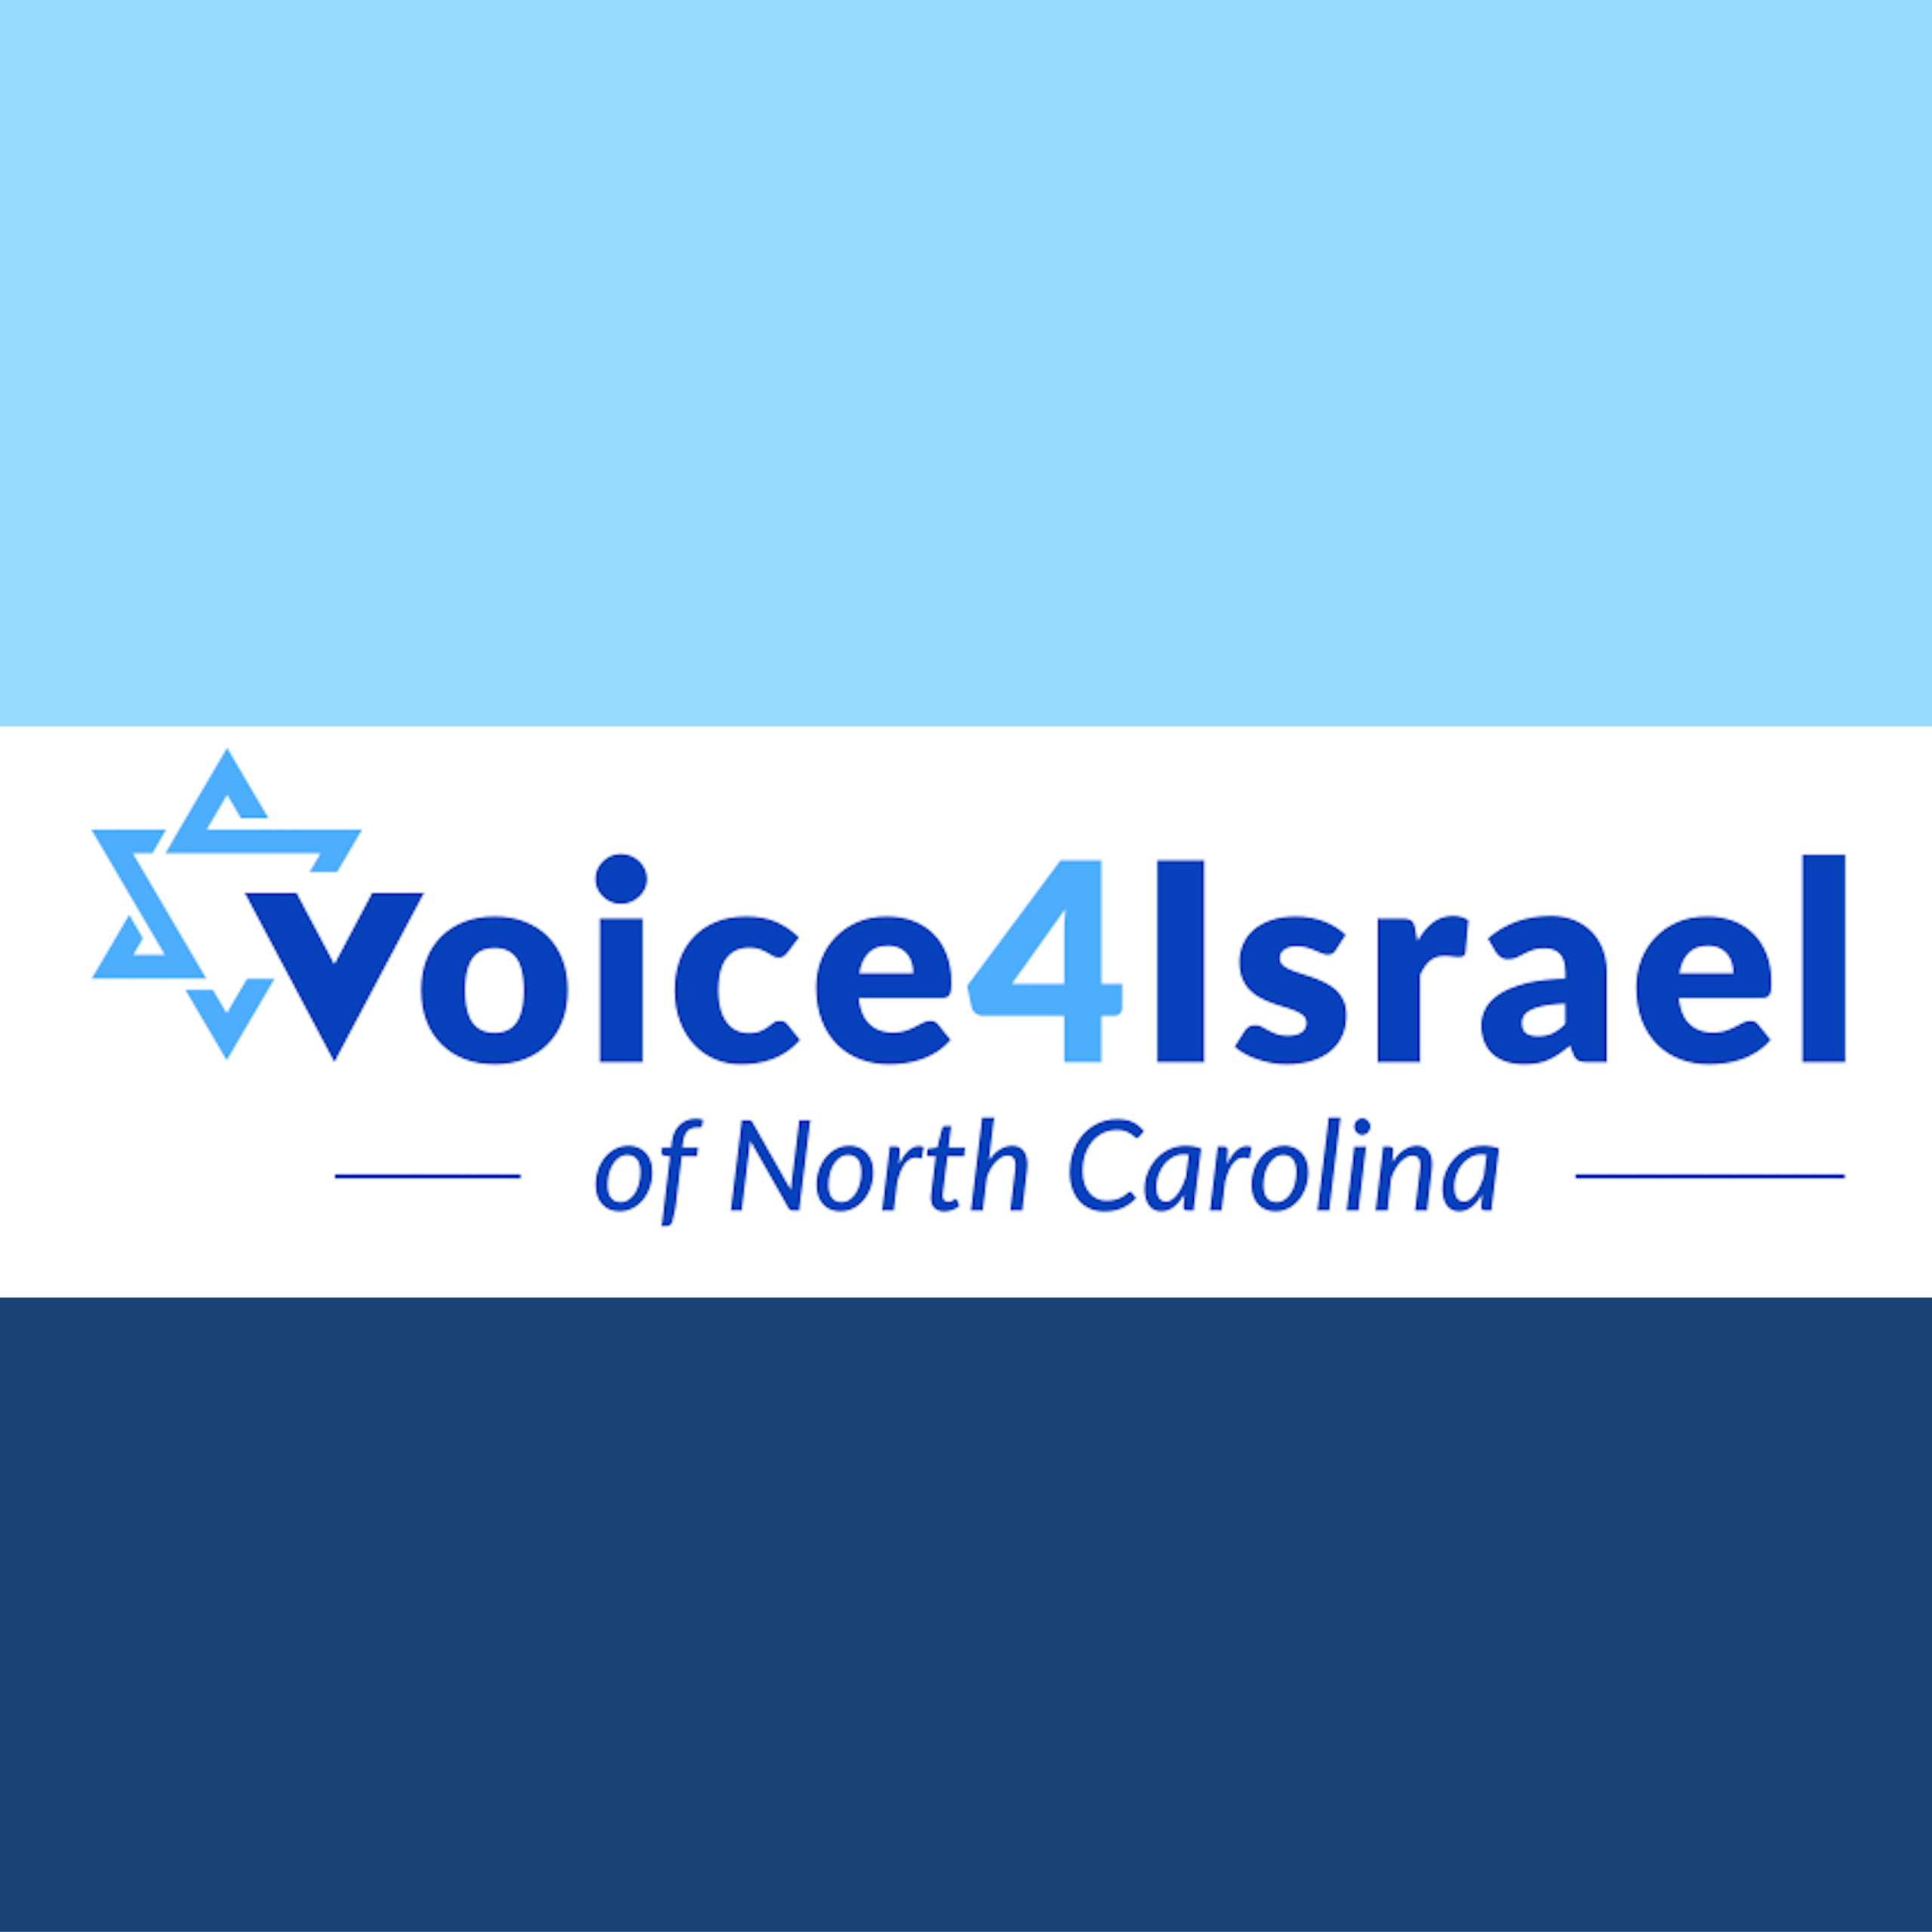 Voice4Israel